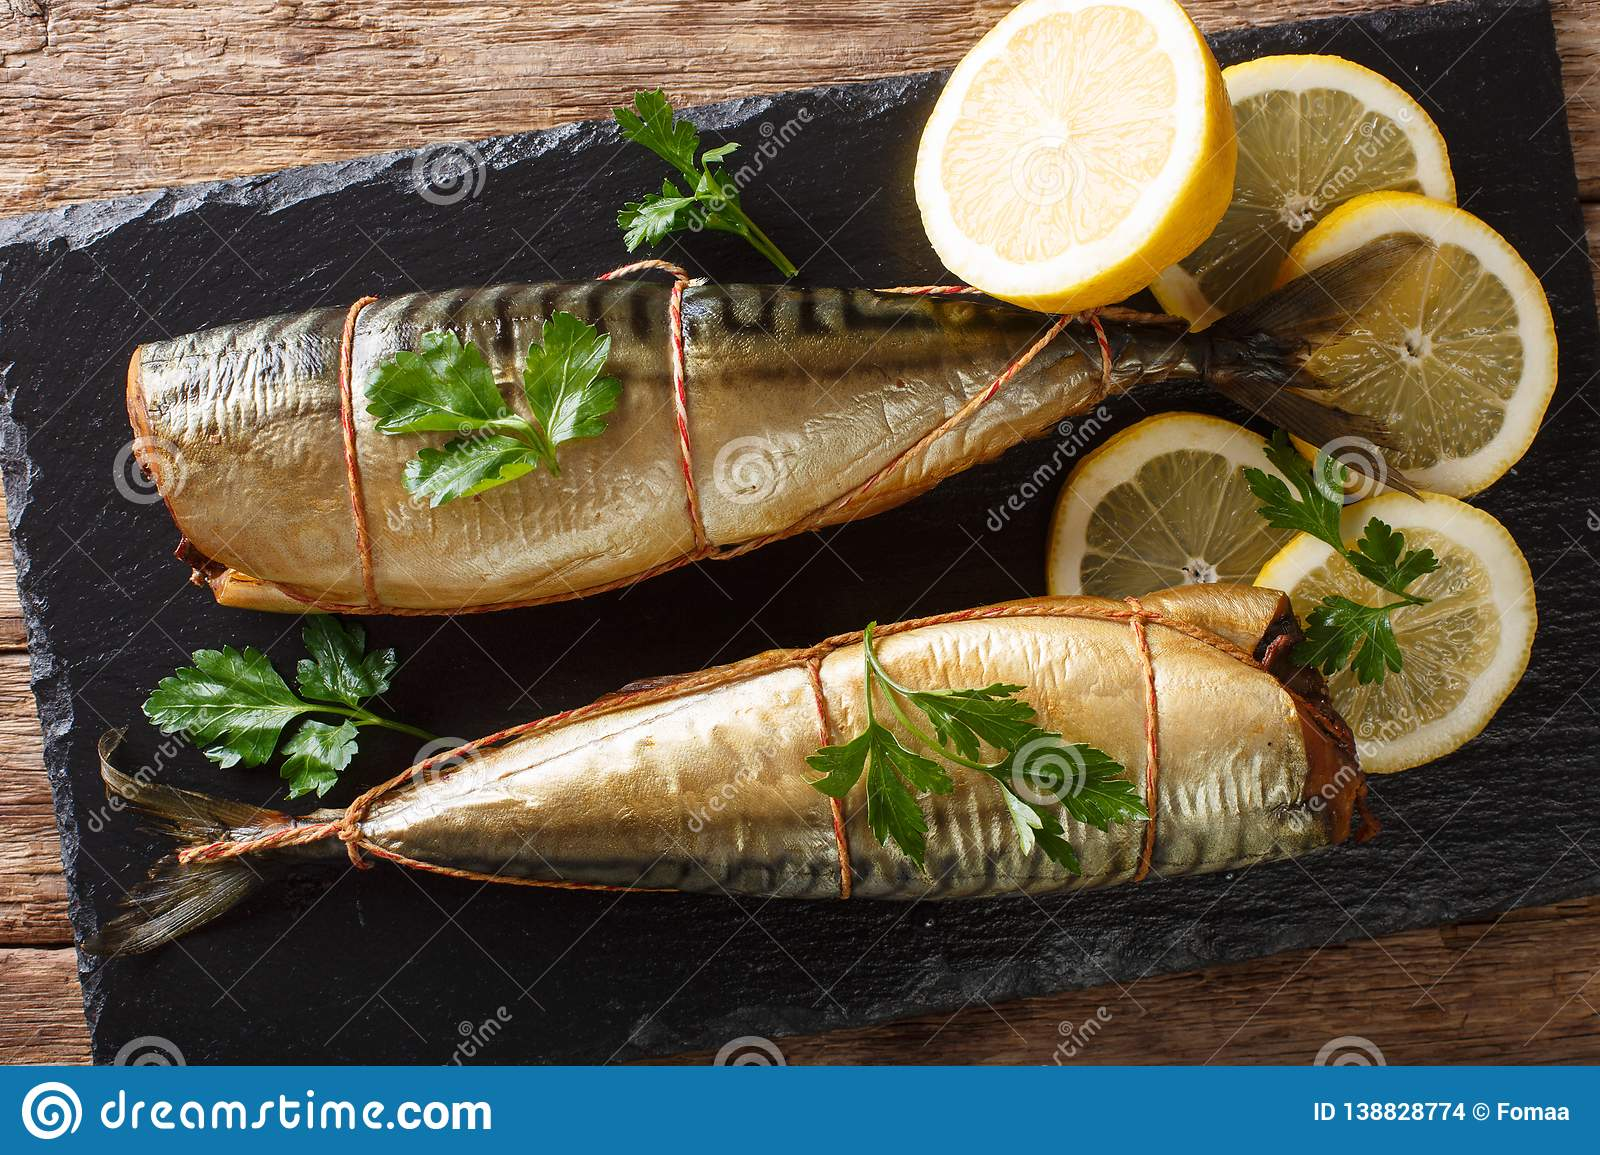 Delicious whole smoked mackerel with lemons and parsley closeup on a black slate board. Horizontal top view